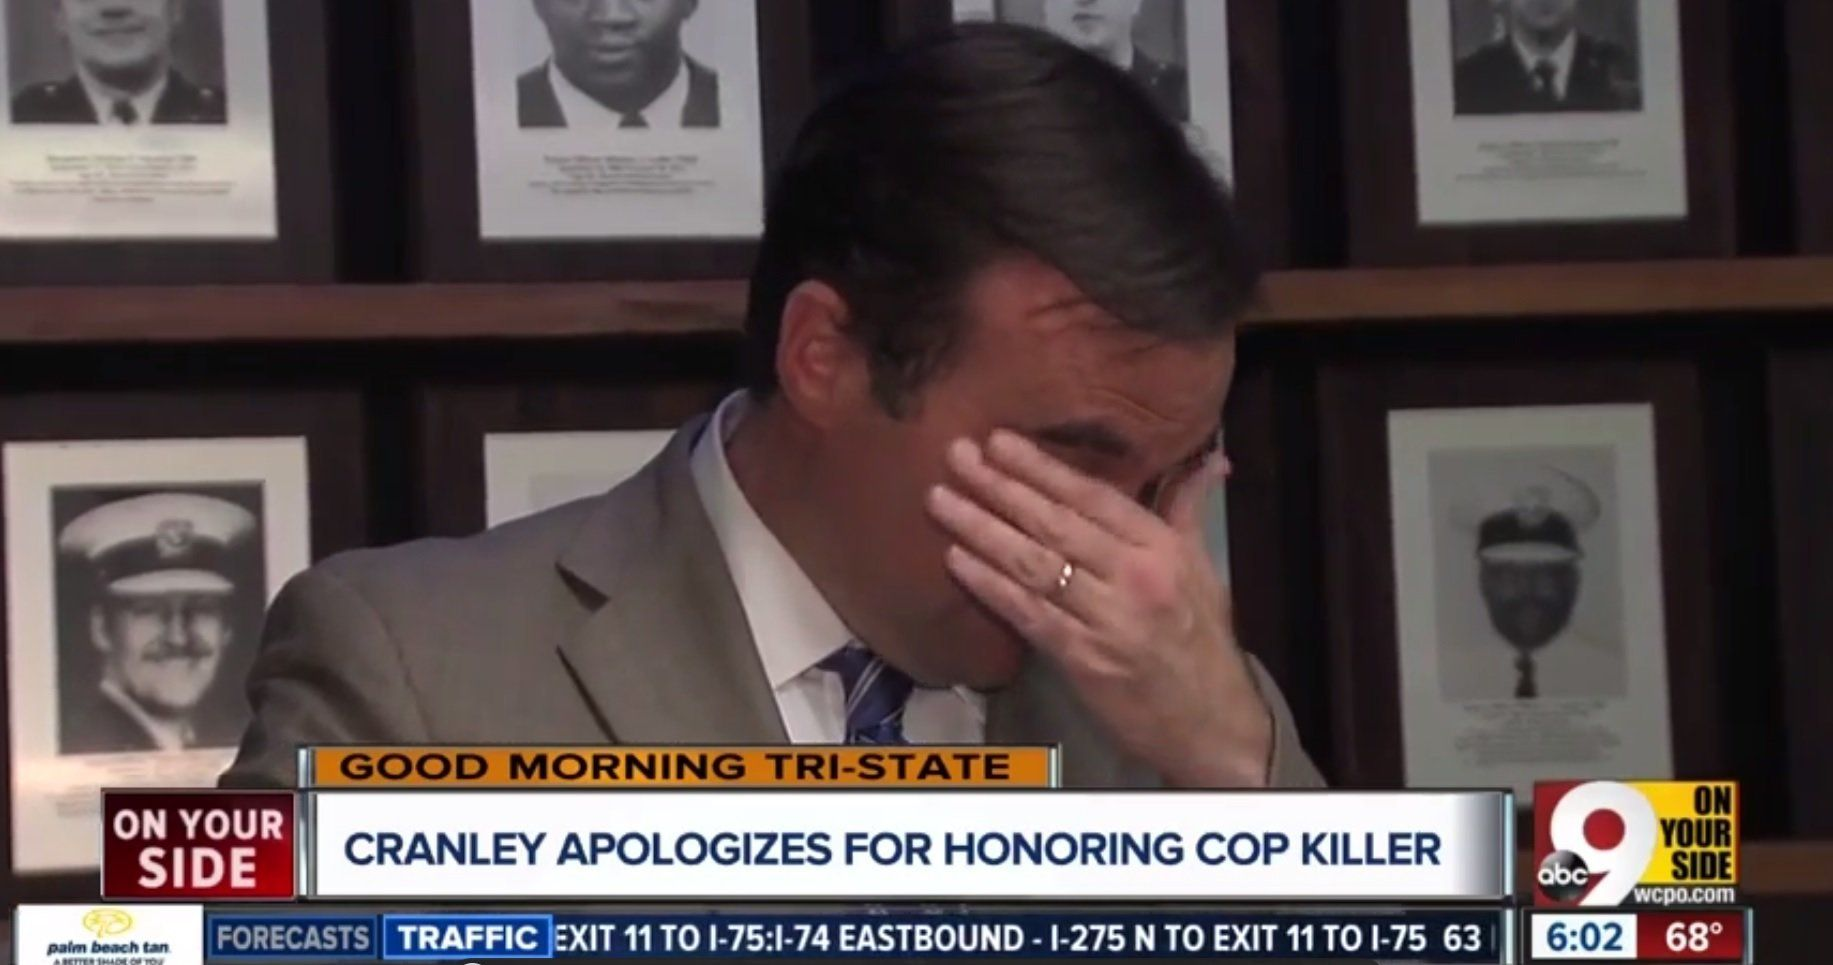 Cincinnati Mayor John Cranley has made an emotional apology after his office mistakenly issued a proclamation honoring a man who killed a city police officer